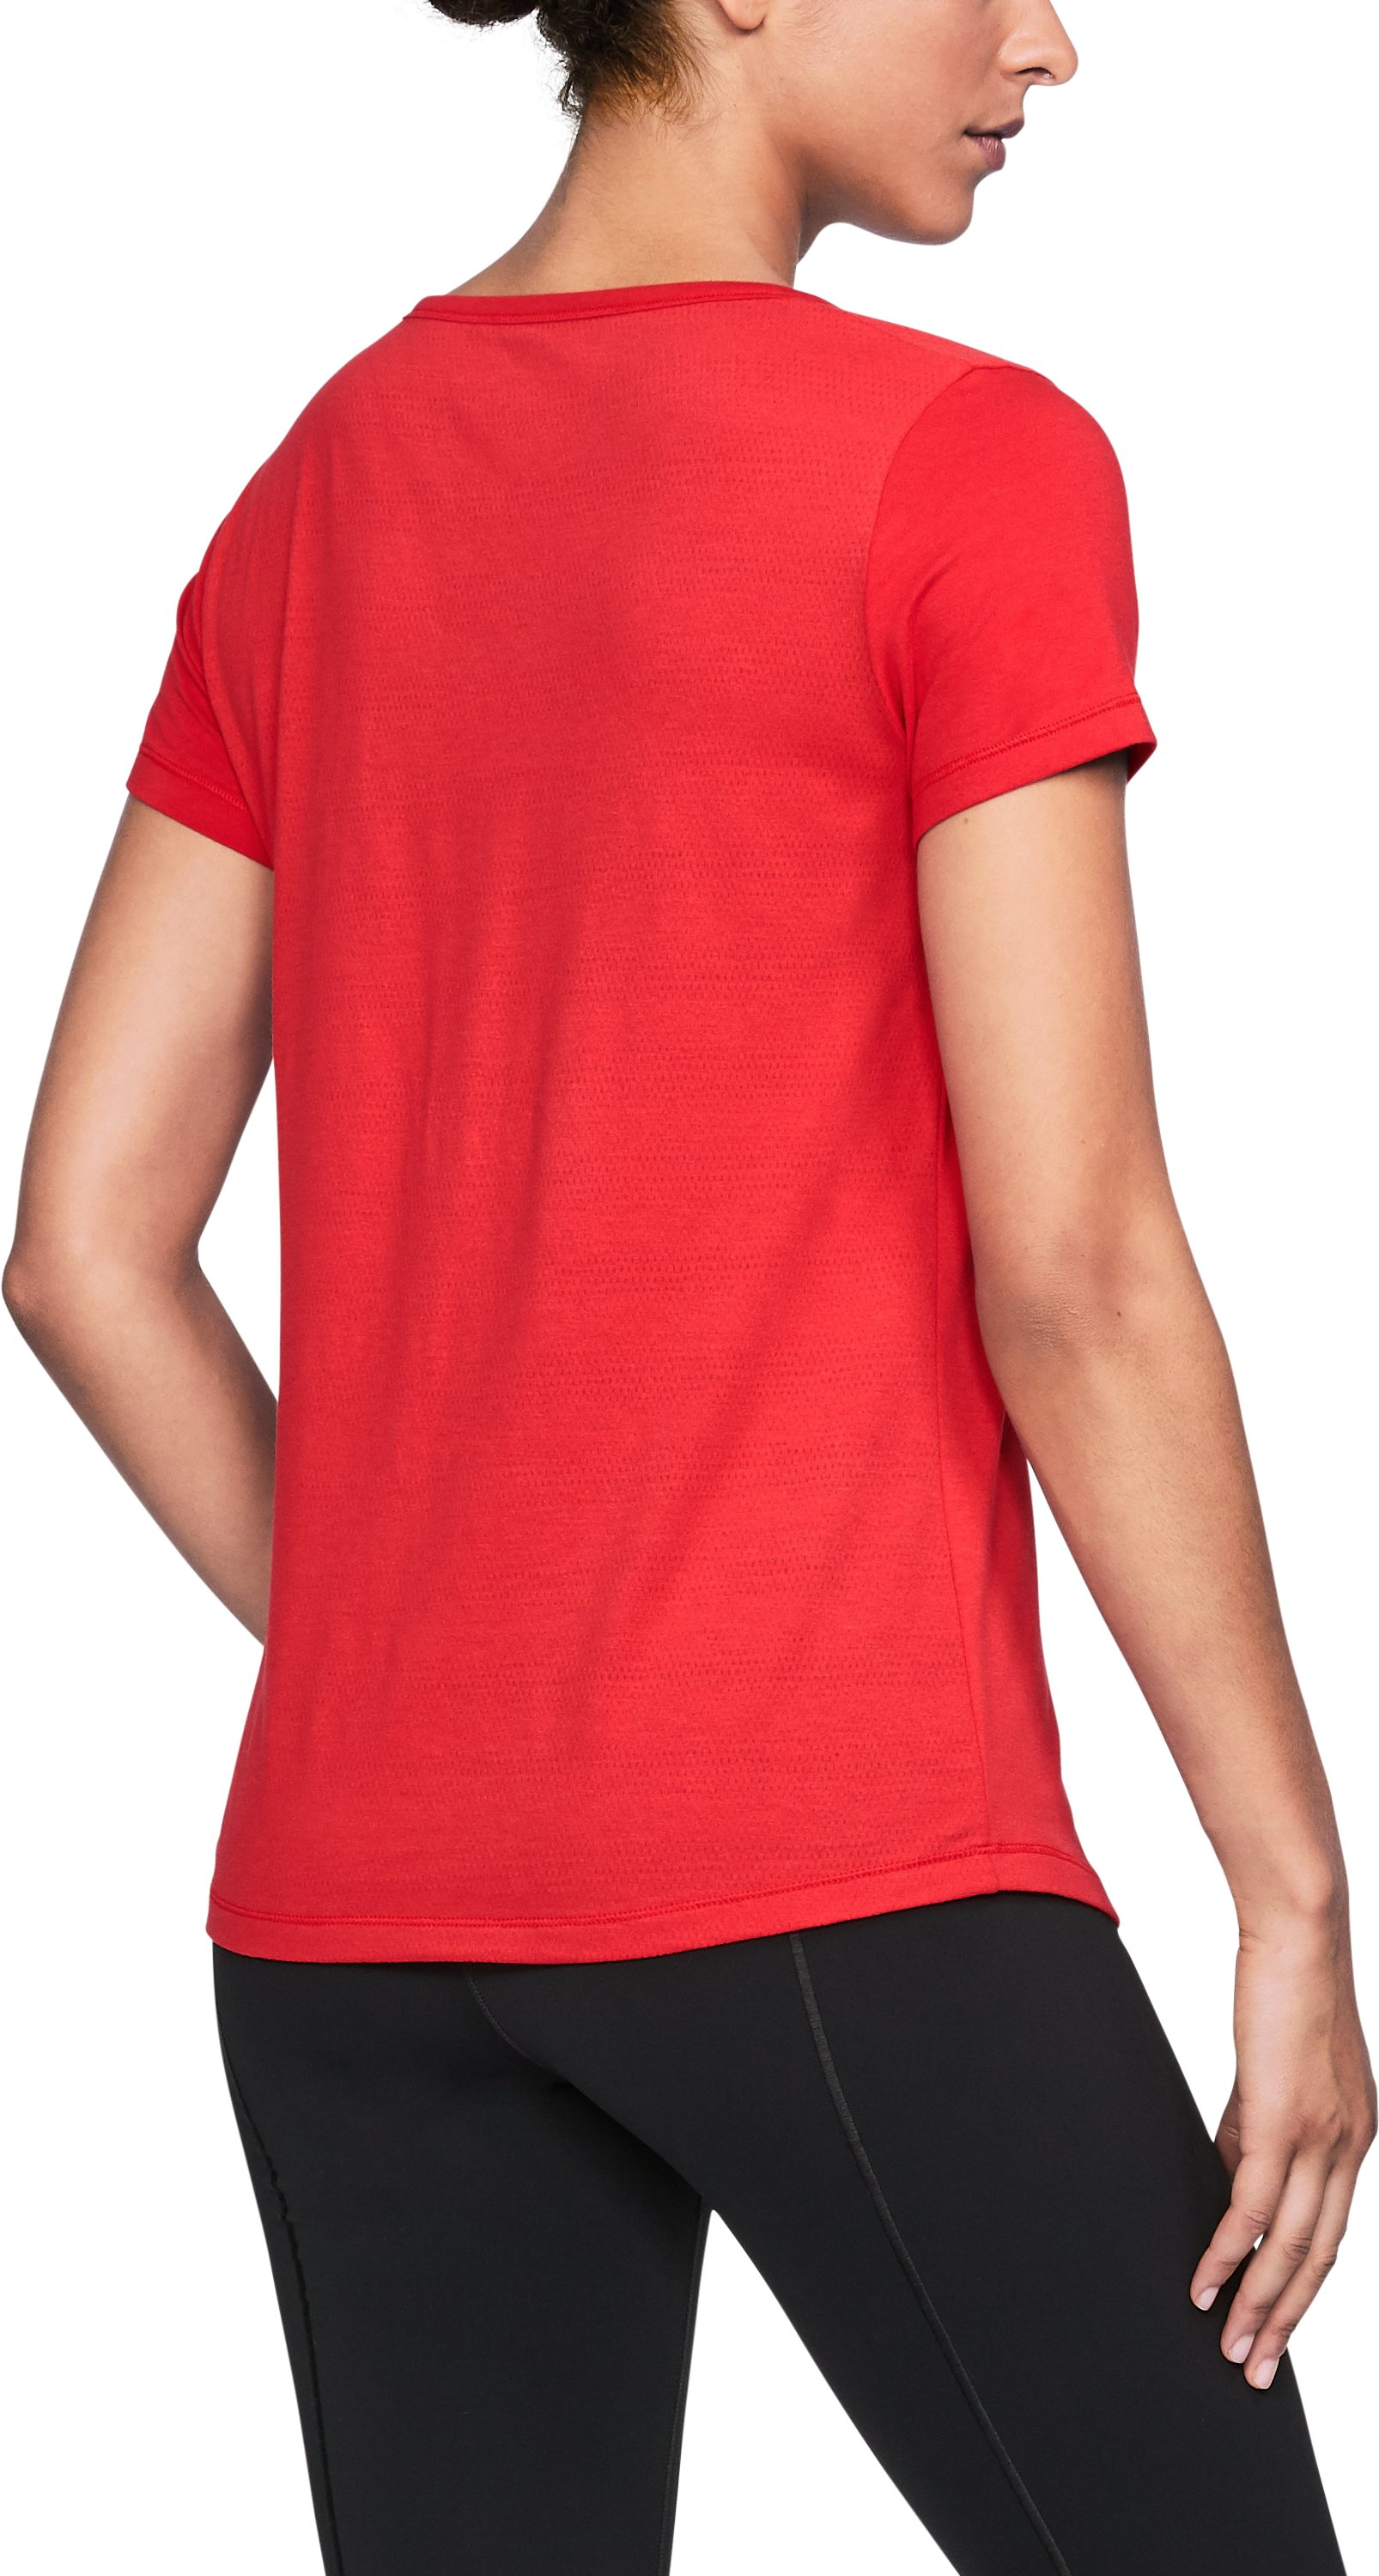 Women's St. John's UA Vent Short Sleeve T-Shirt, Red,